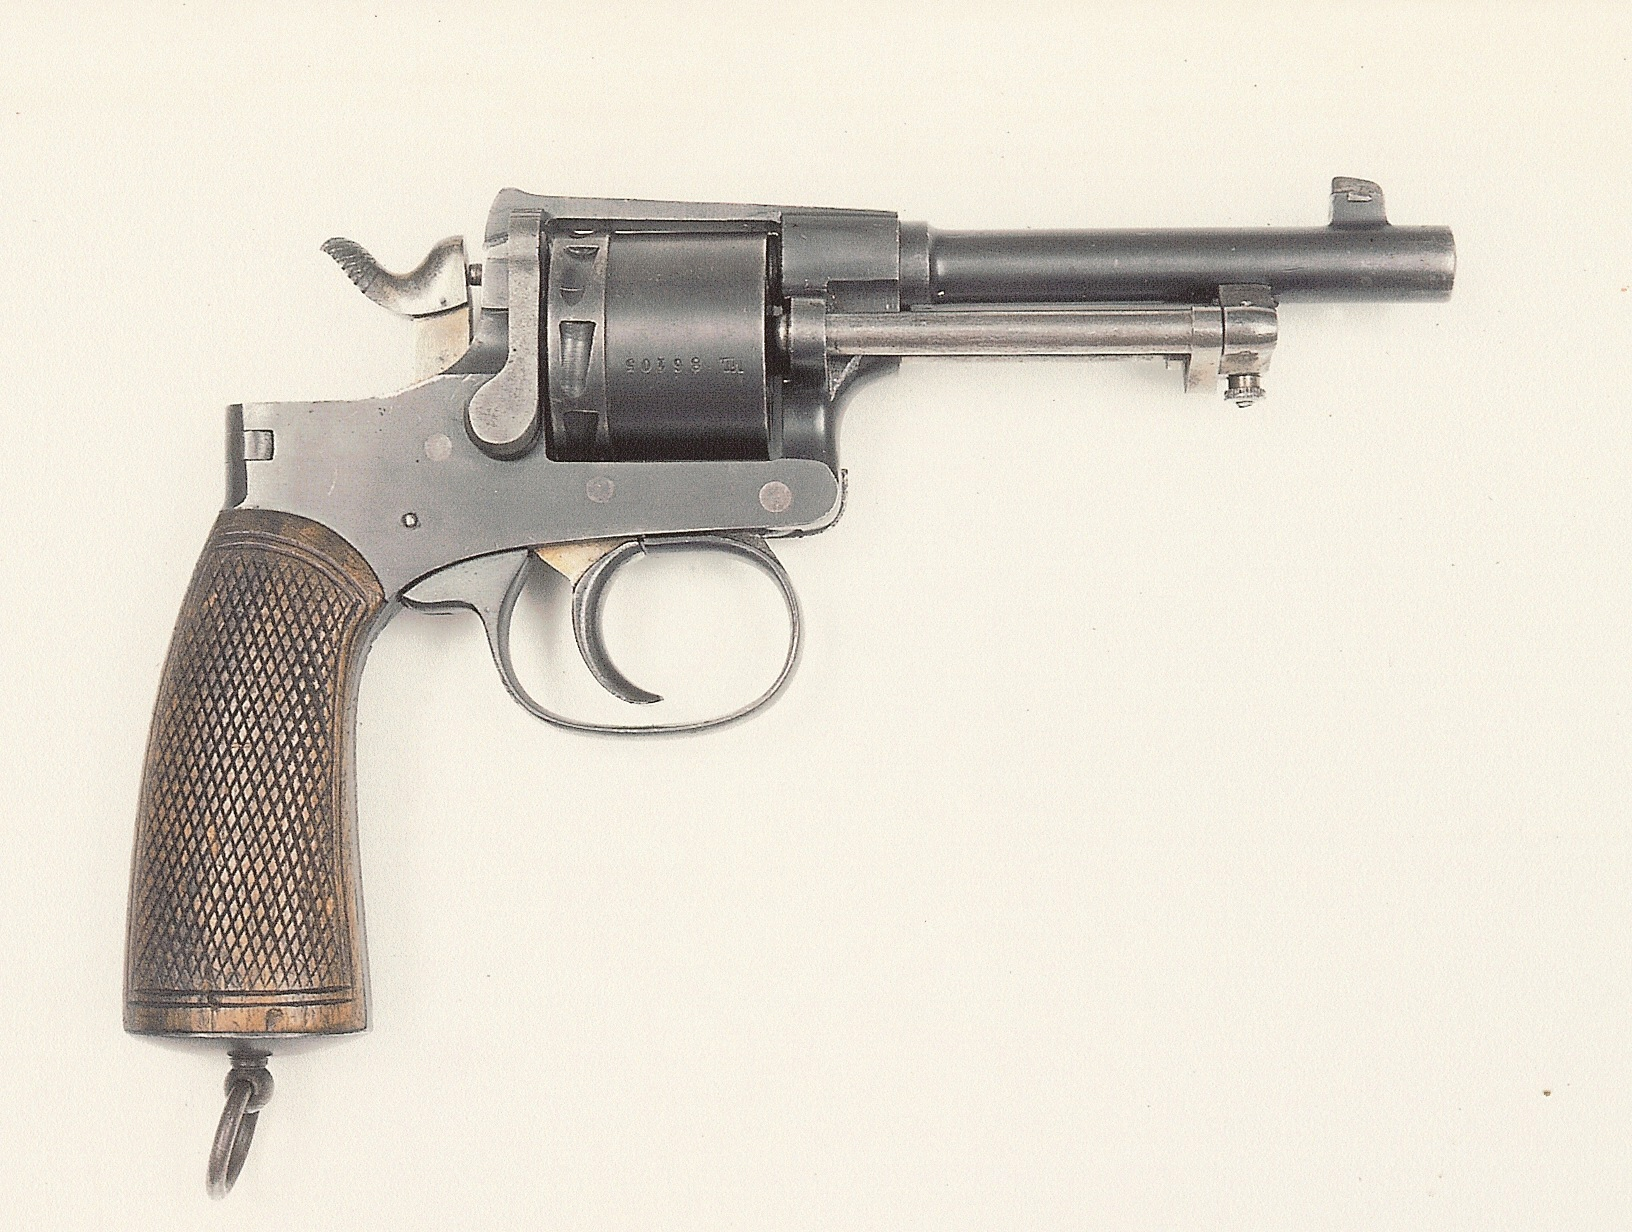 //www.gunsandammo.com/files/whats-the-ugliest-handgun-ever-made/1898-gasser.jpg